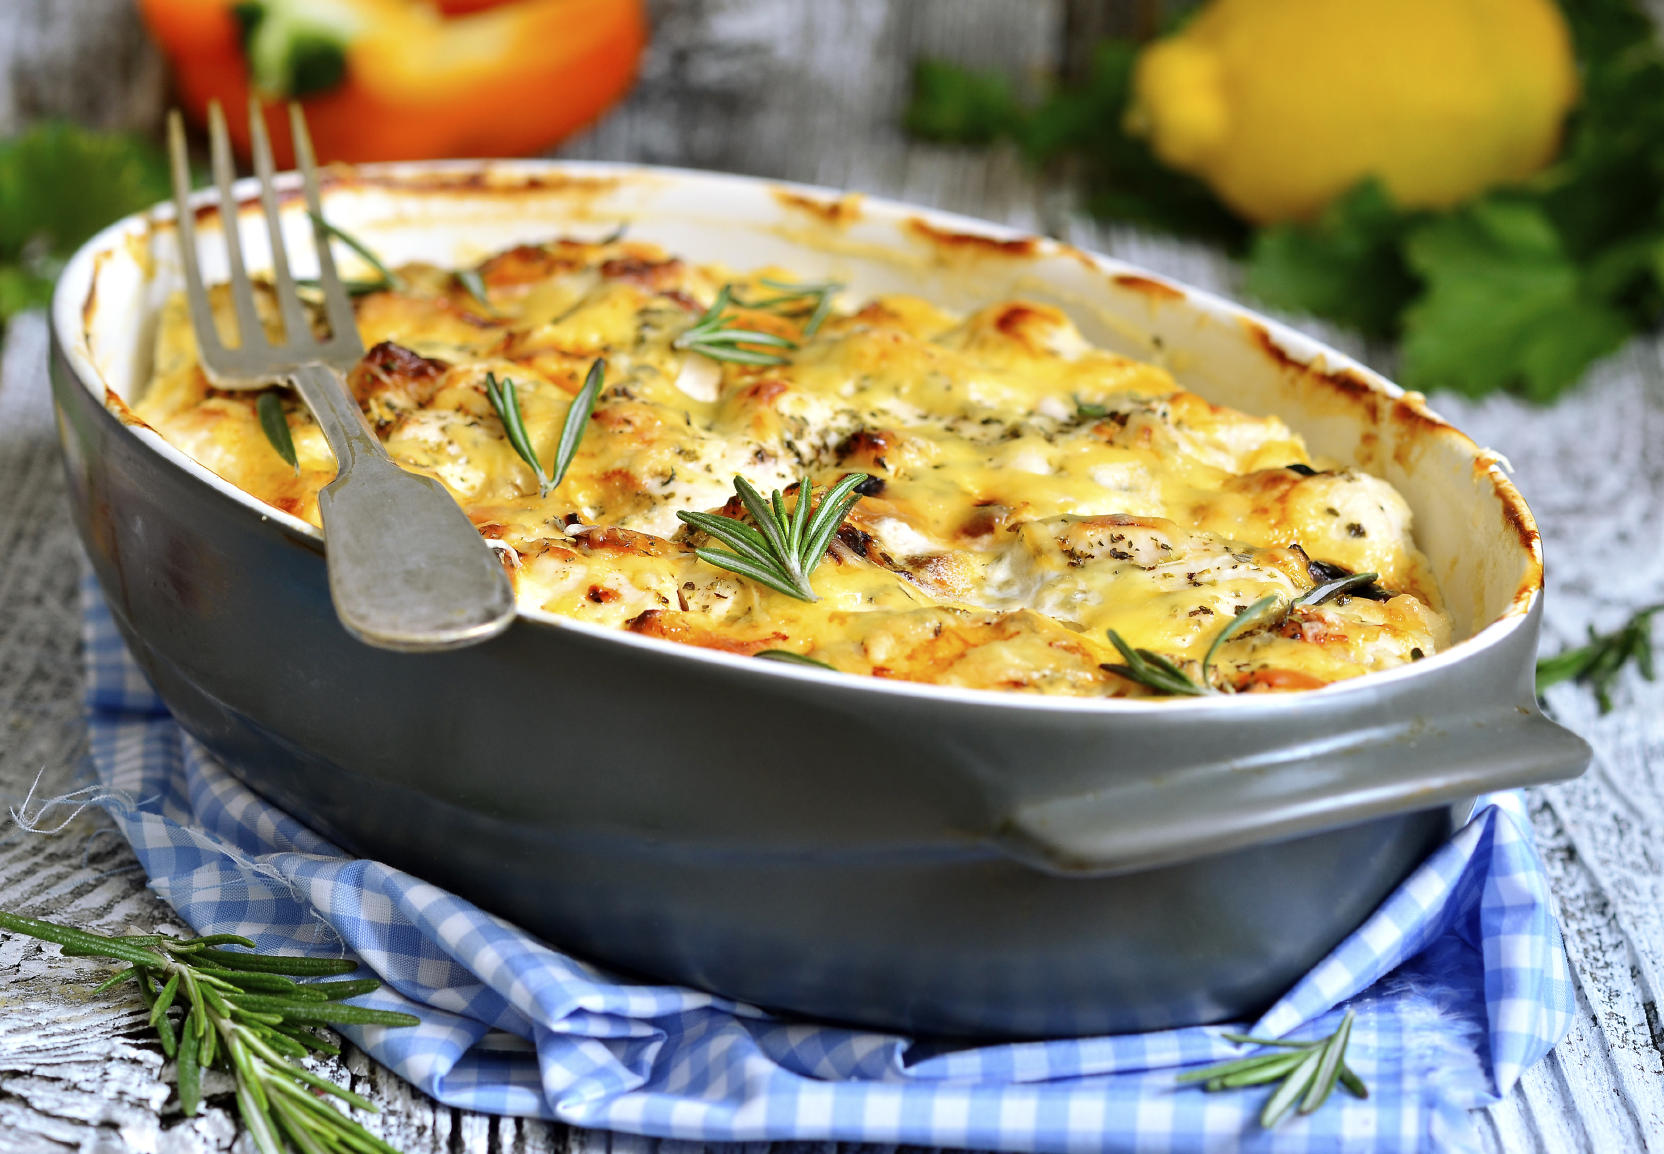 Chicken fillet baked in sour cream sauce with herb and cheese.